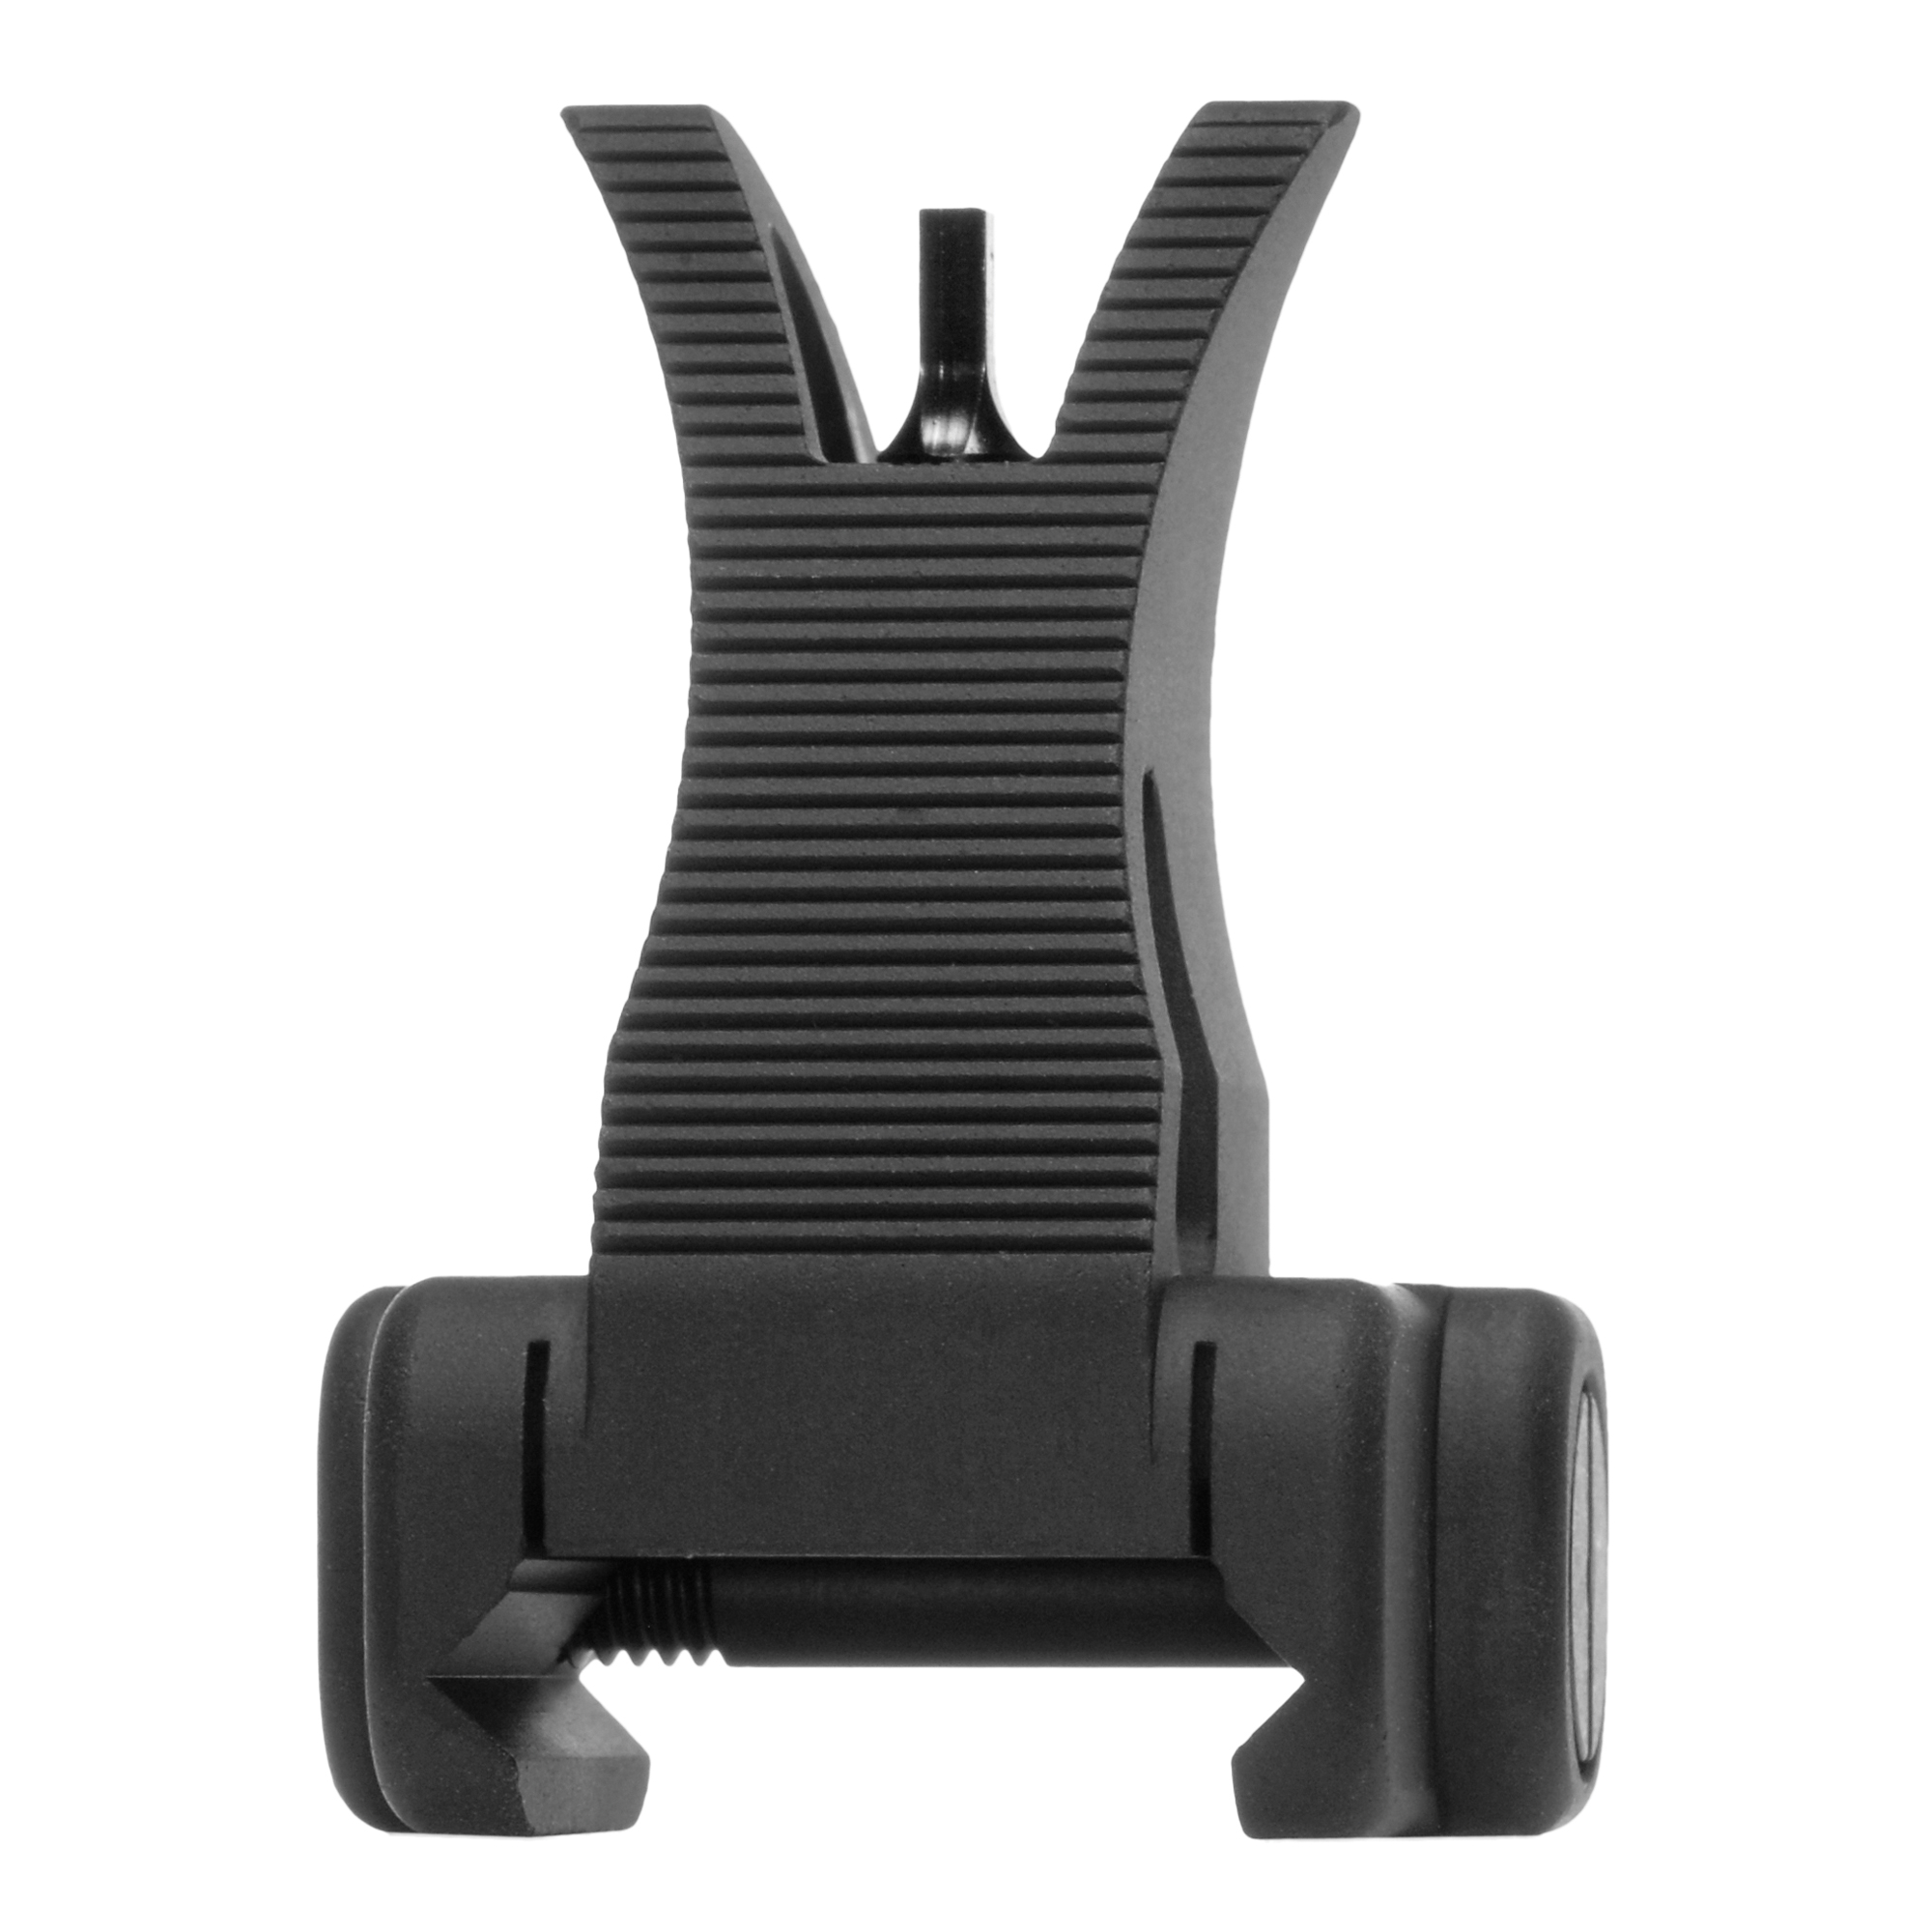 """Durability and dead-on accuracy make Troy BattleSights(TM) the hands-down first choice of Special Ops and Tactical Users Worldwide. Troy's M4 Front Fixed BattleSight"""" a permanent"""" rail-mounted alternative to a standard A2 sight"""" allows limitless mounting options on all-length rails with a serrated ramp."""